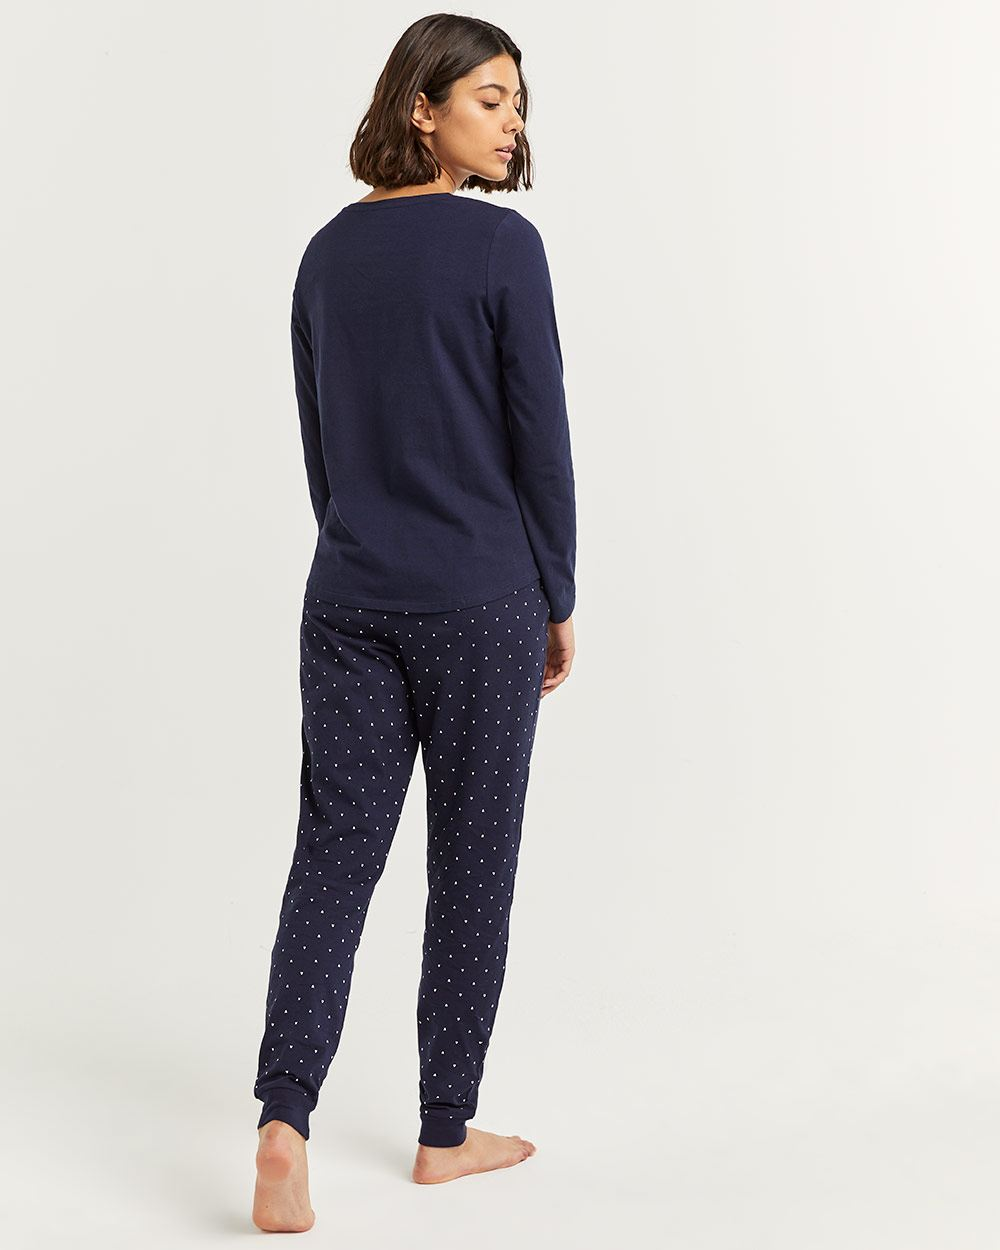 Cotton Pyjama Set with Joggers Pants